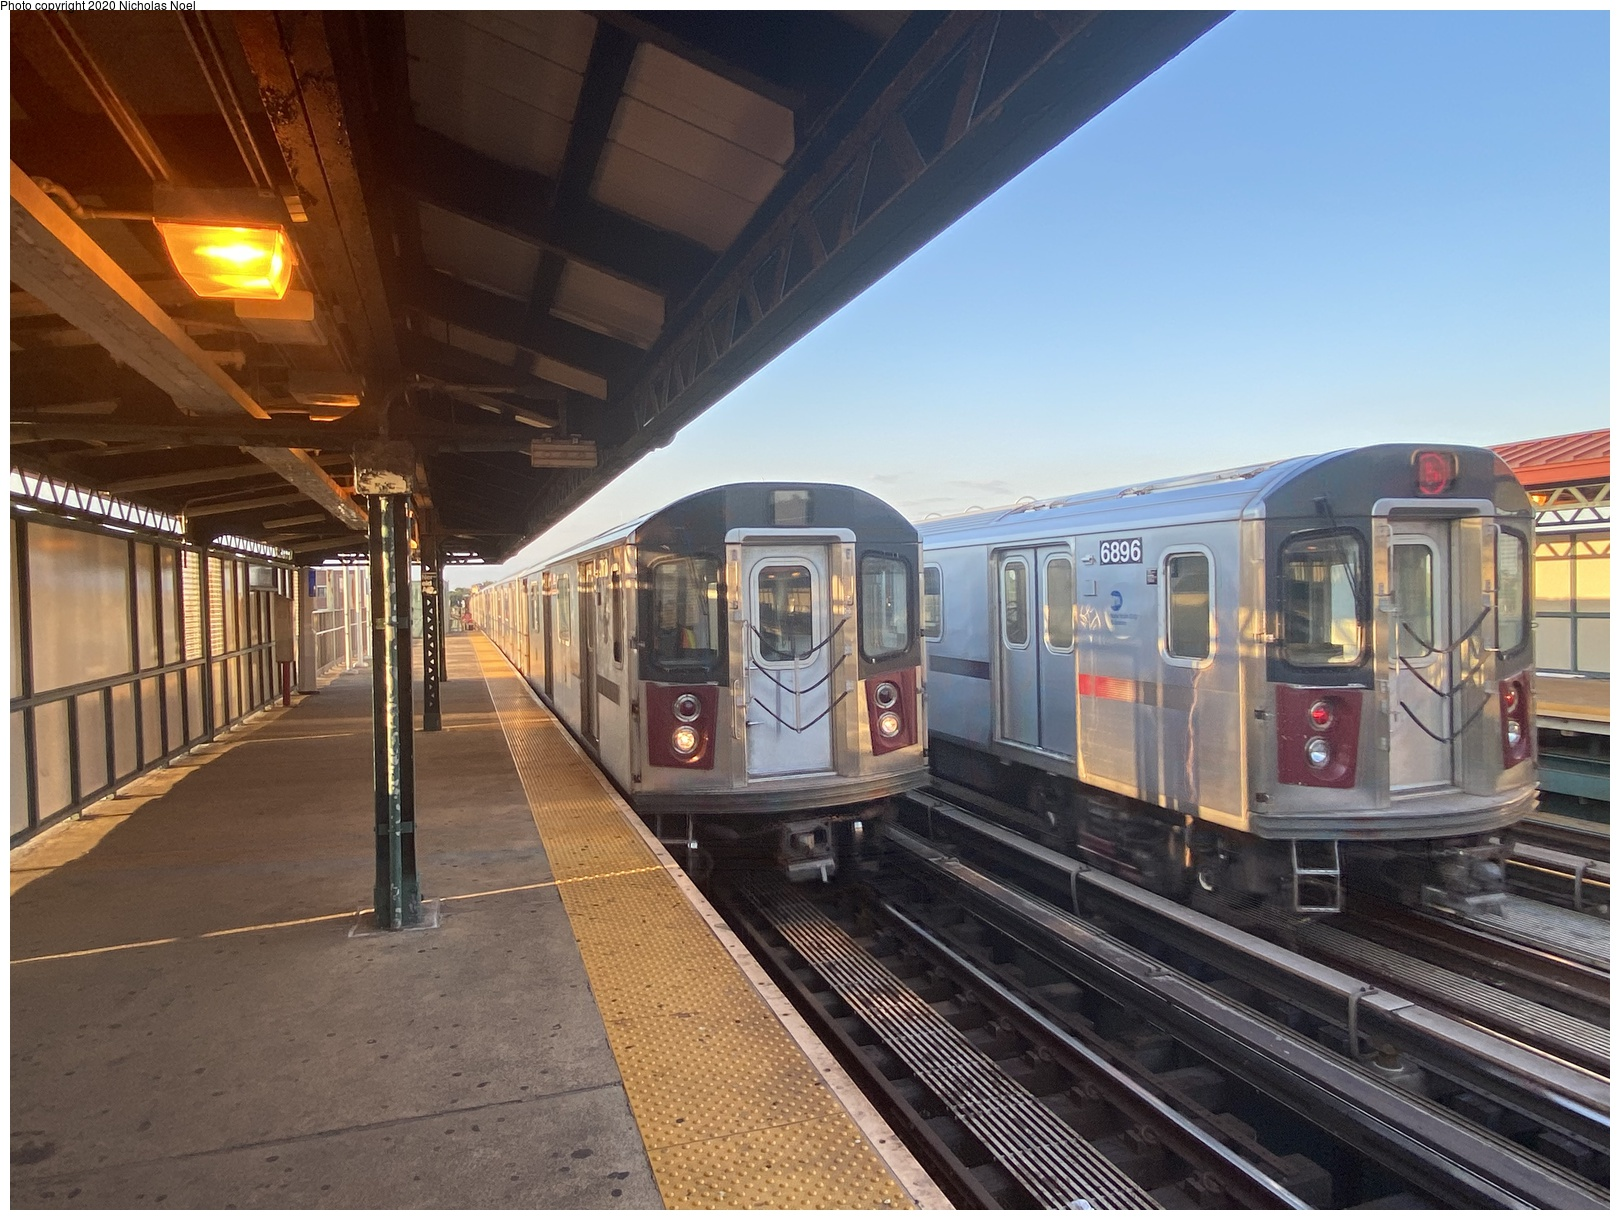 (357k, 1044x787)<br><b>Country:</b> United States<br><b>City:</b> New York<br><b>System:</b> New York City Transit<br><b>Line:</b> BMT Myrtle Avenue Line<br><b>Location:</b> Metropolitan Avenue <br><b>Car:</b> BMT Elevated Gate Car  <br><b>Photo by:</b> Joel Shanus<br><b>Viewed (this week/total):</b> 2 / 1100